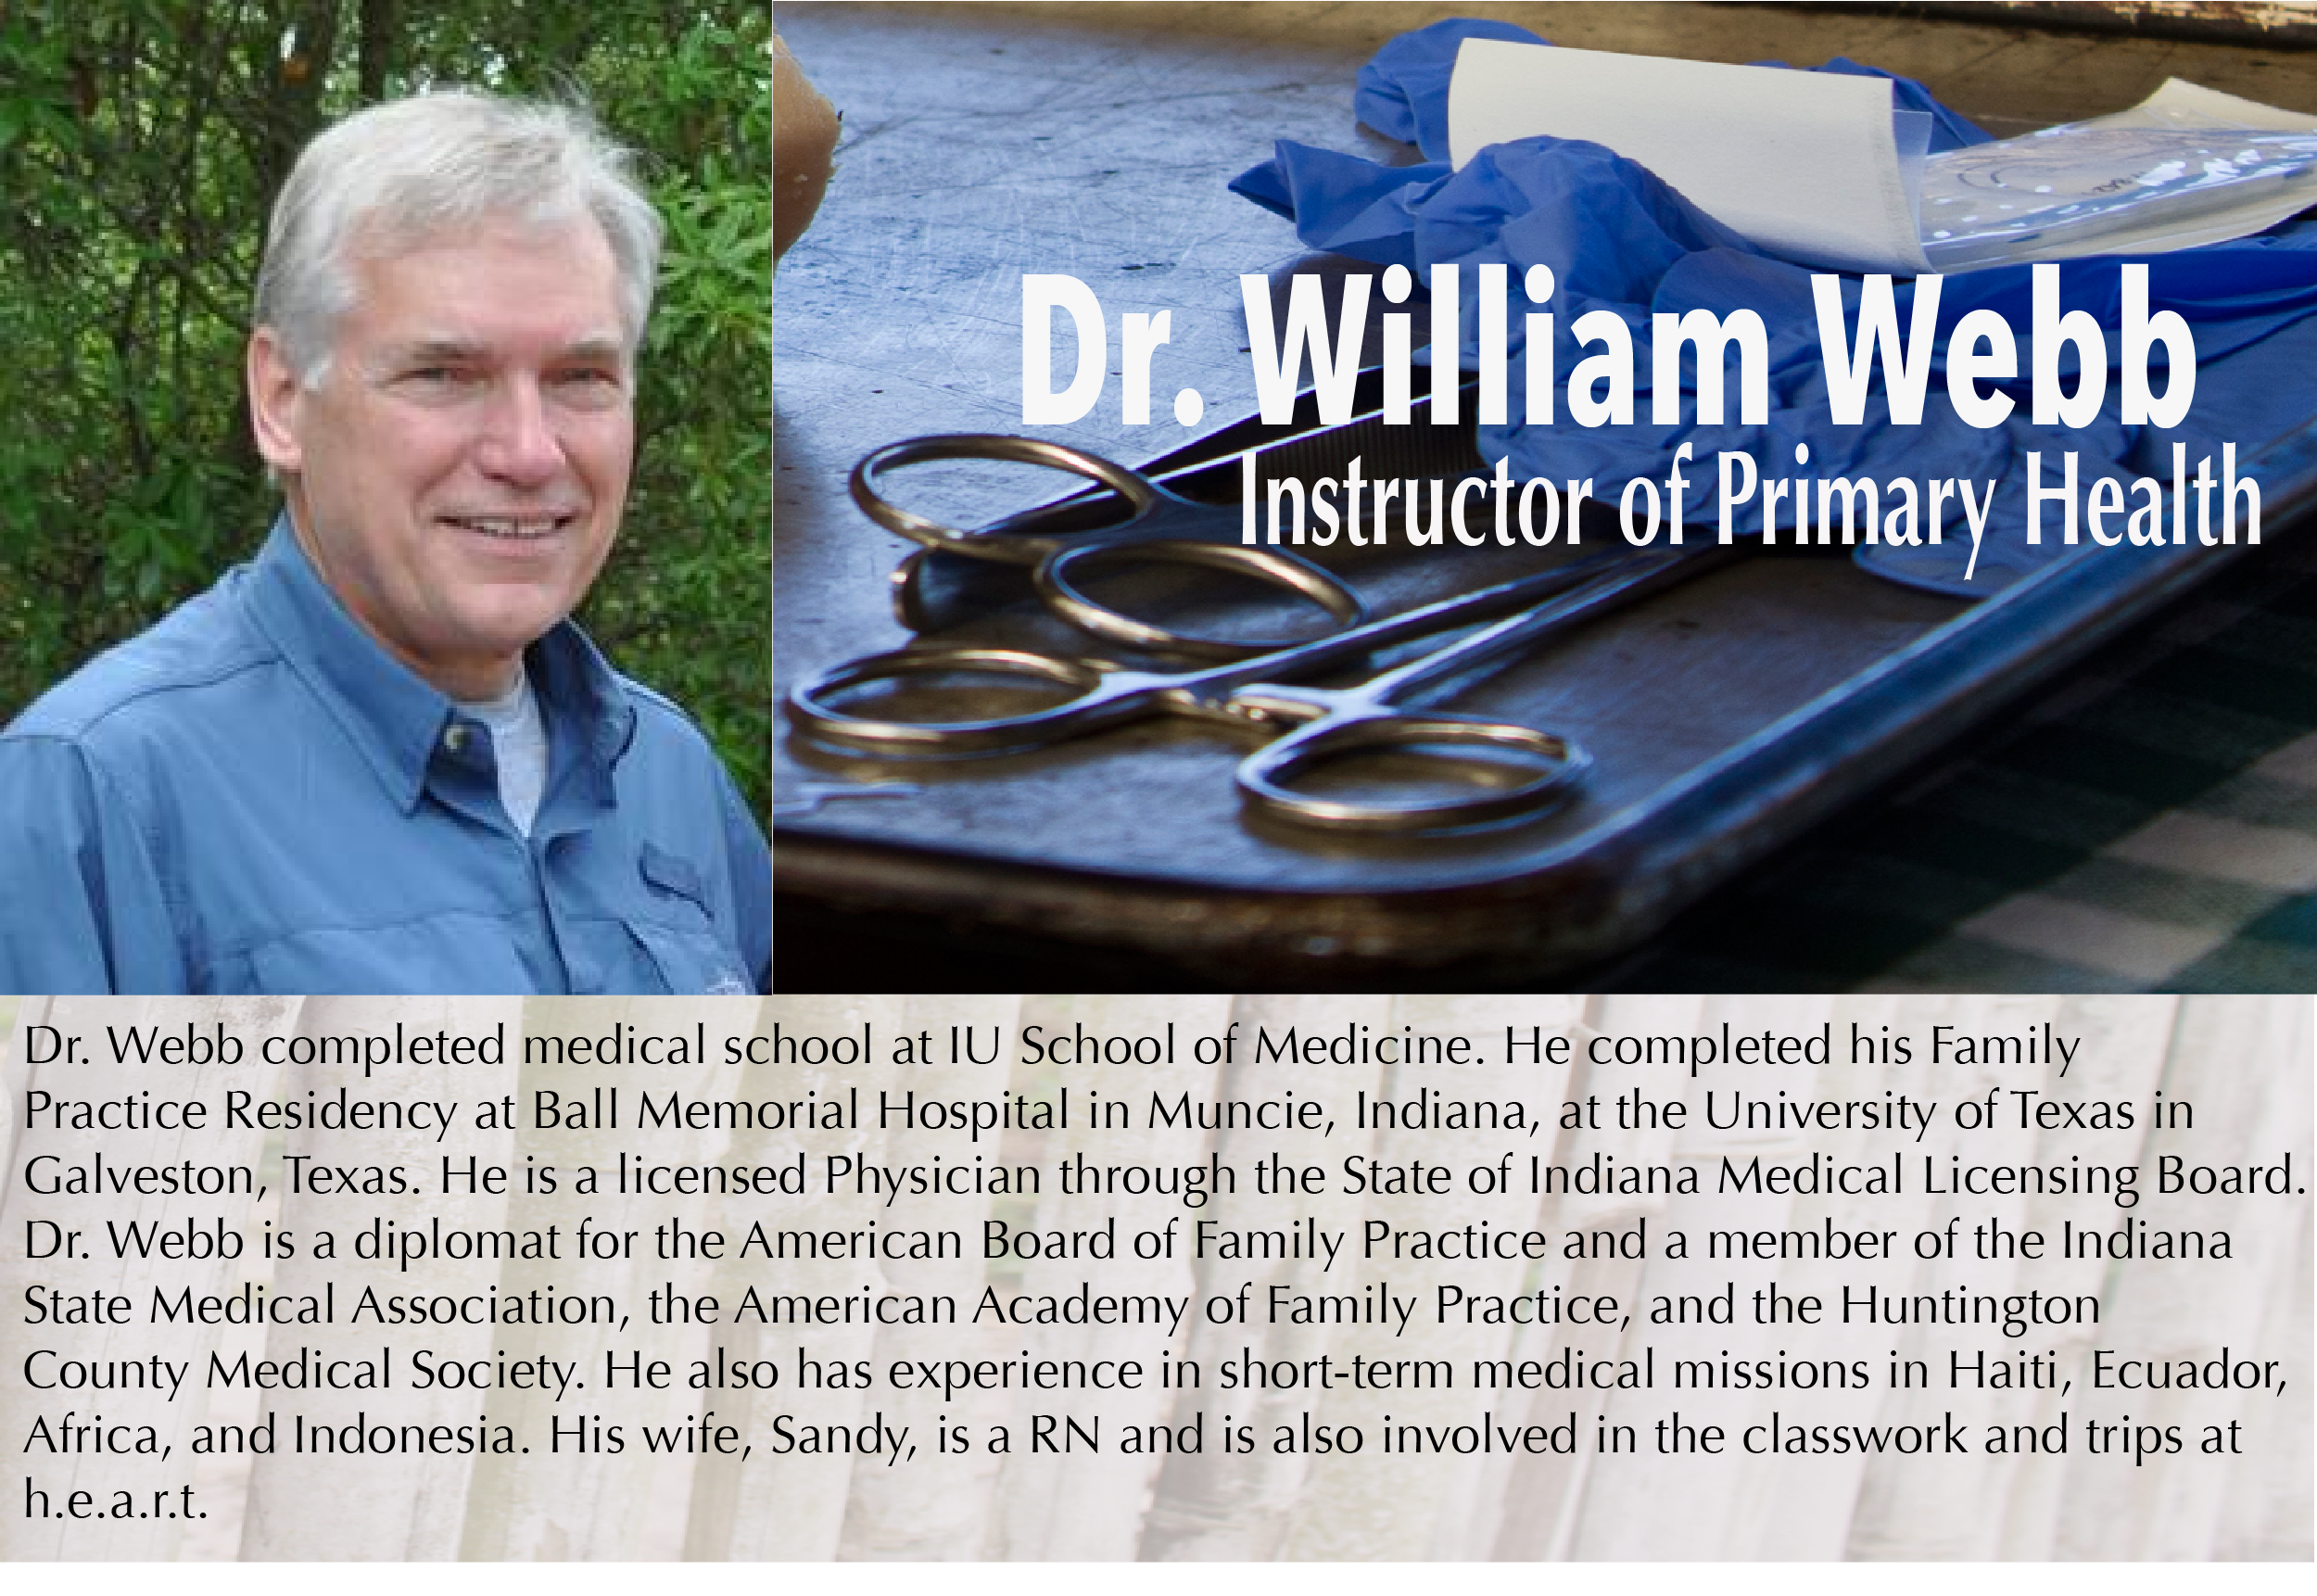 Dr. William Webb -HEART Institute - Central Florida, Lake Wales, Florida - Sustainability Training - Missionary Training